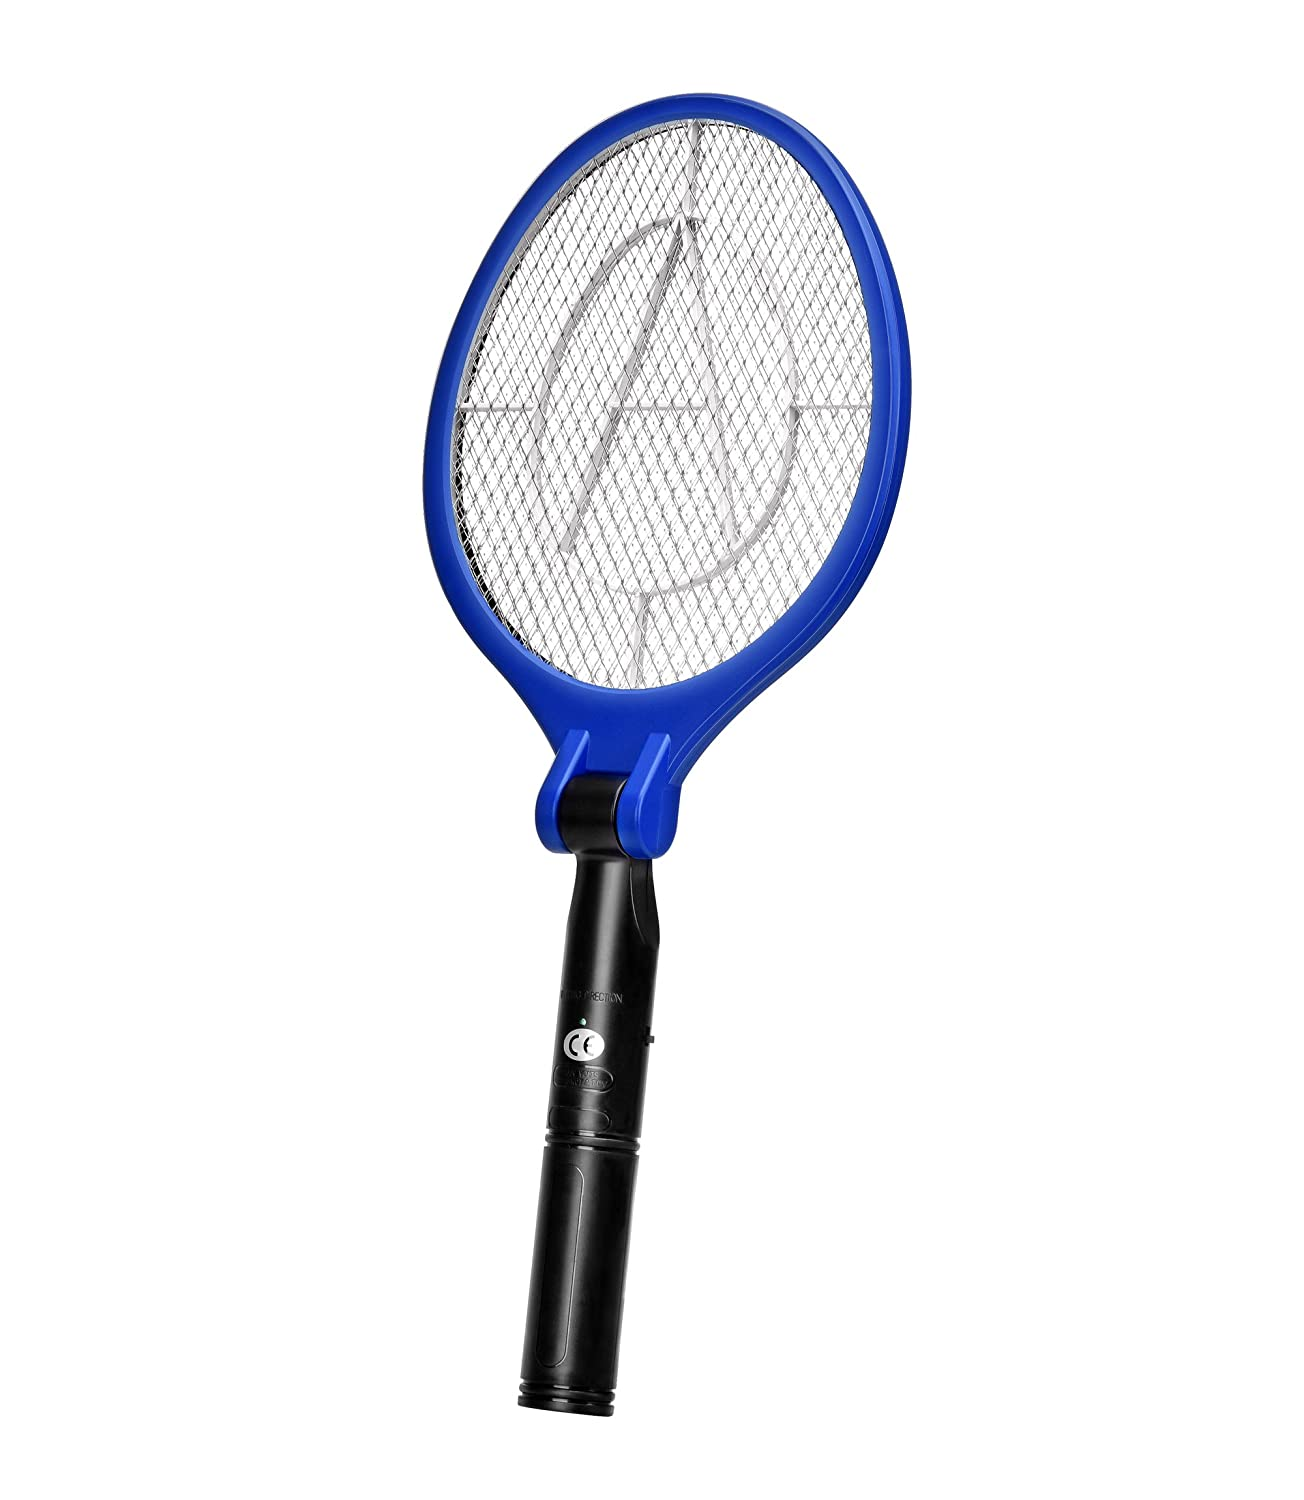 AOWOTO Electric Bug Zapper Fly Swatter Zap Insect Fruit Mosquito Killer,Portable Foldable & Compact Racket, Best for Indoor and Outdoor Pest Control(AA Batteries Not Included)